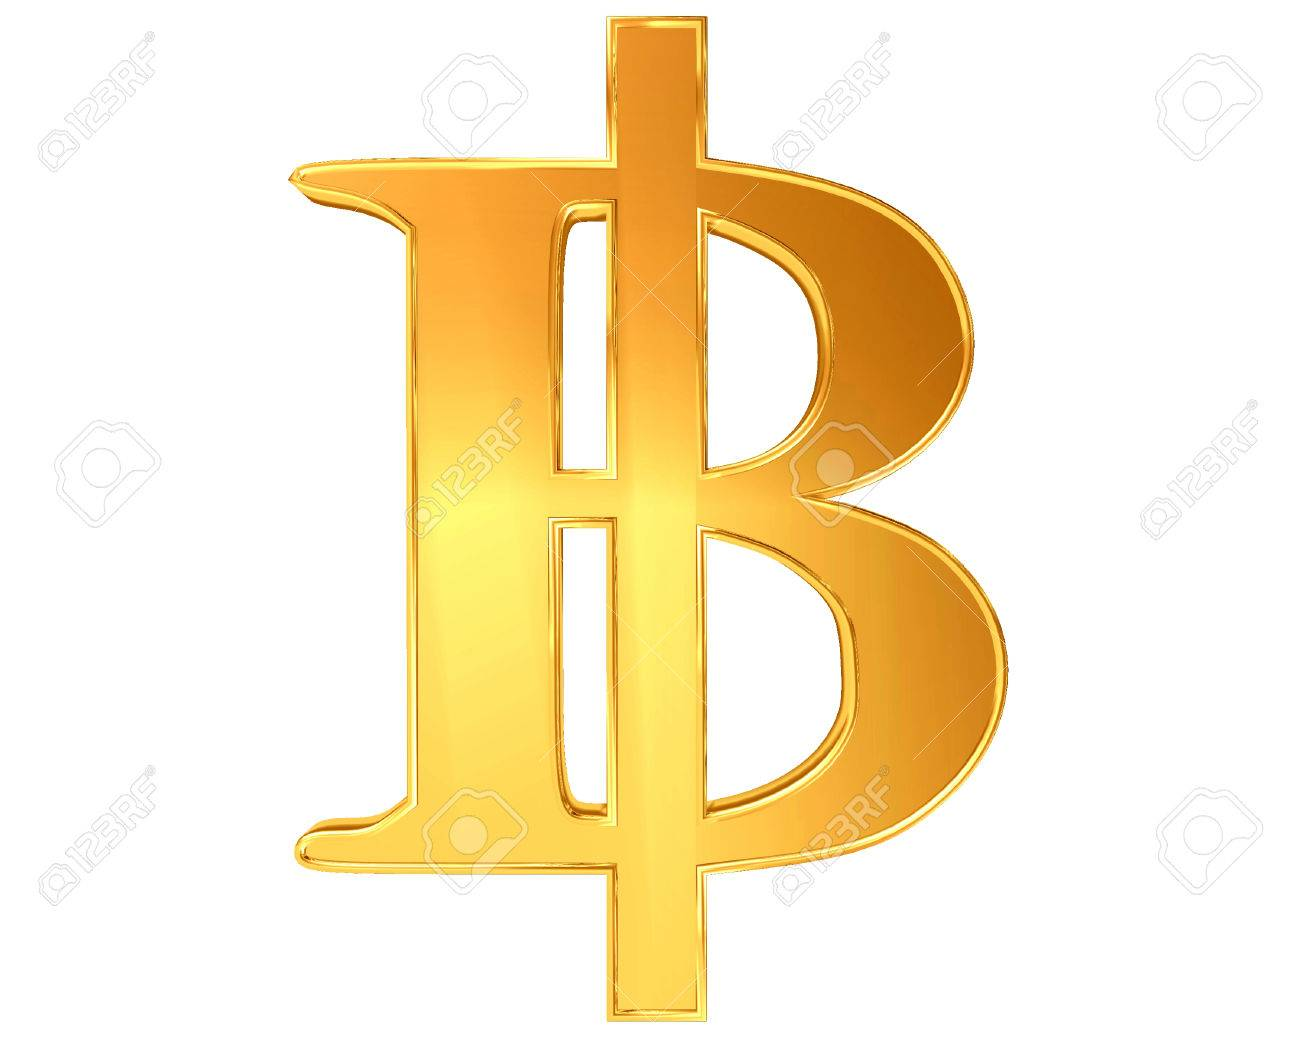 The Sign And Symbol Of The Thai Baht Bitcoins On A White Background